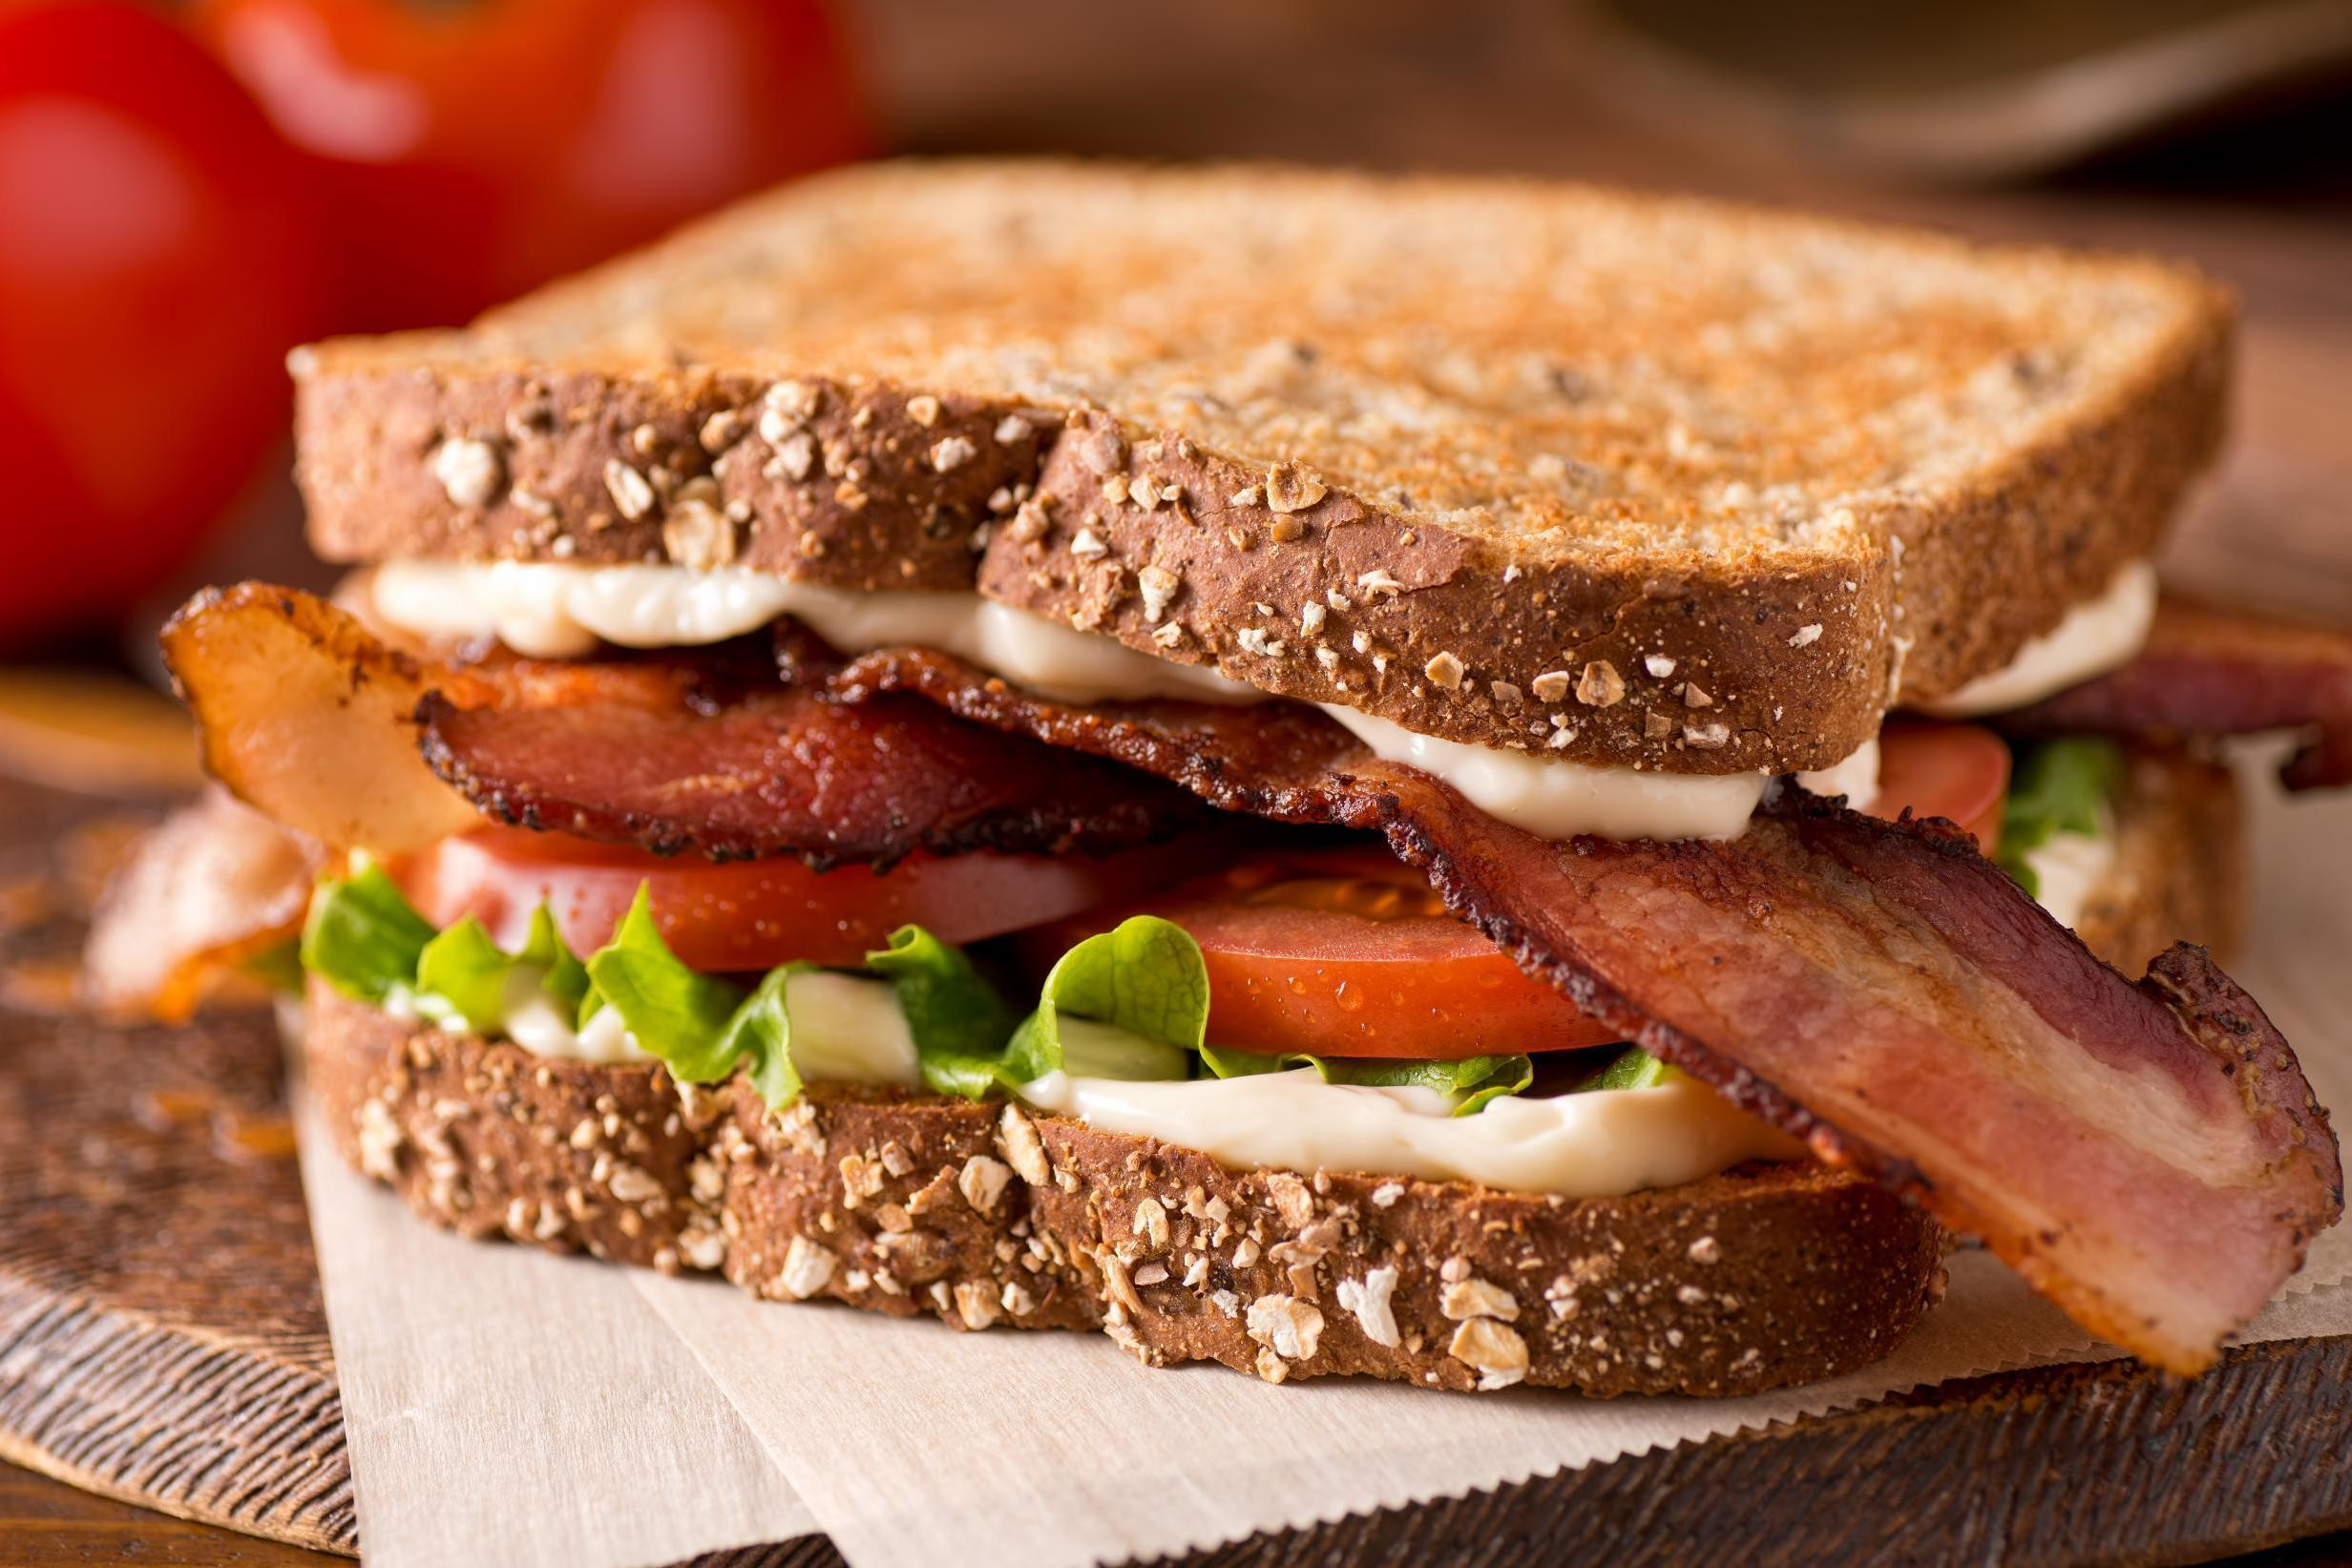 The mistakes people make when making a BLT, according to a top chef 1